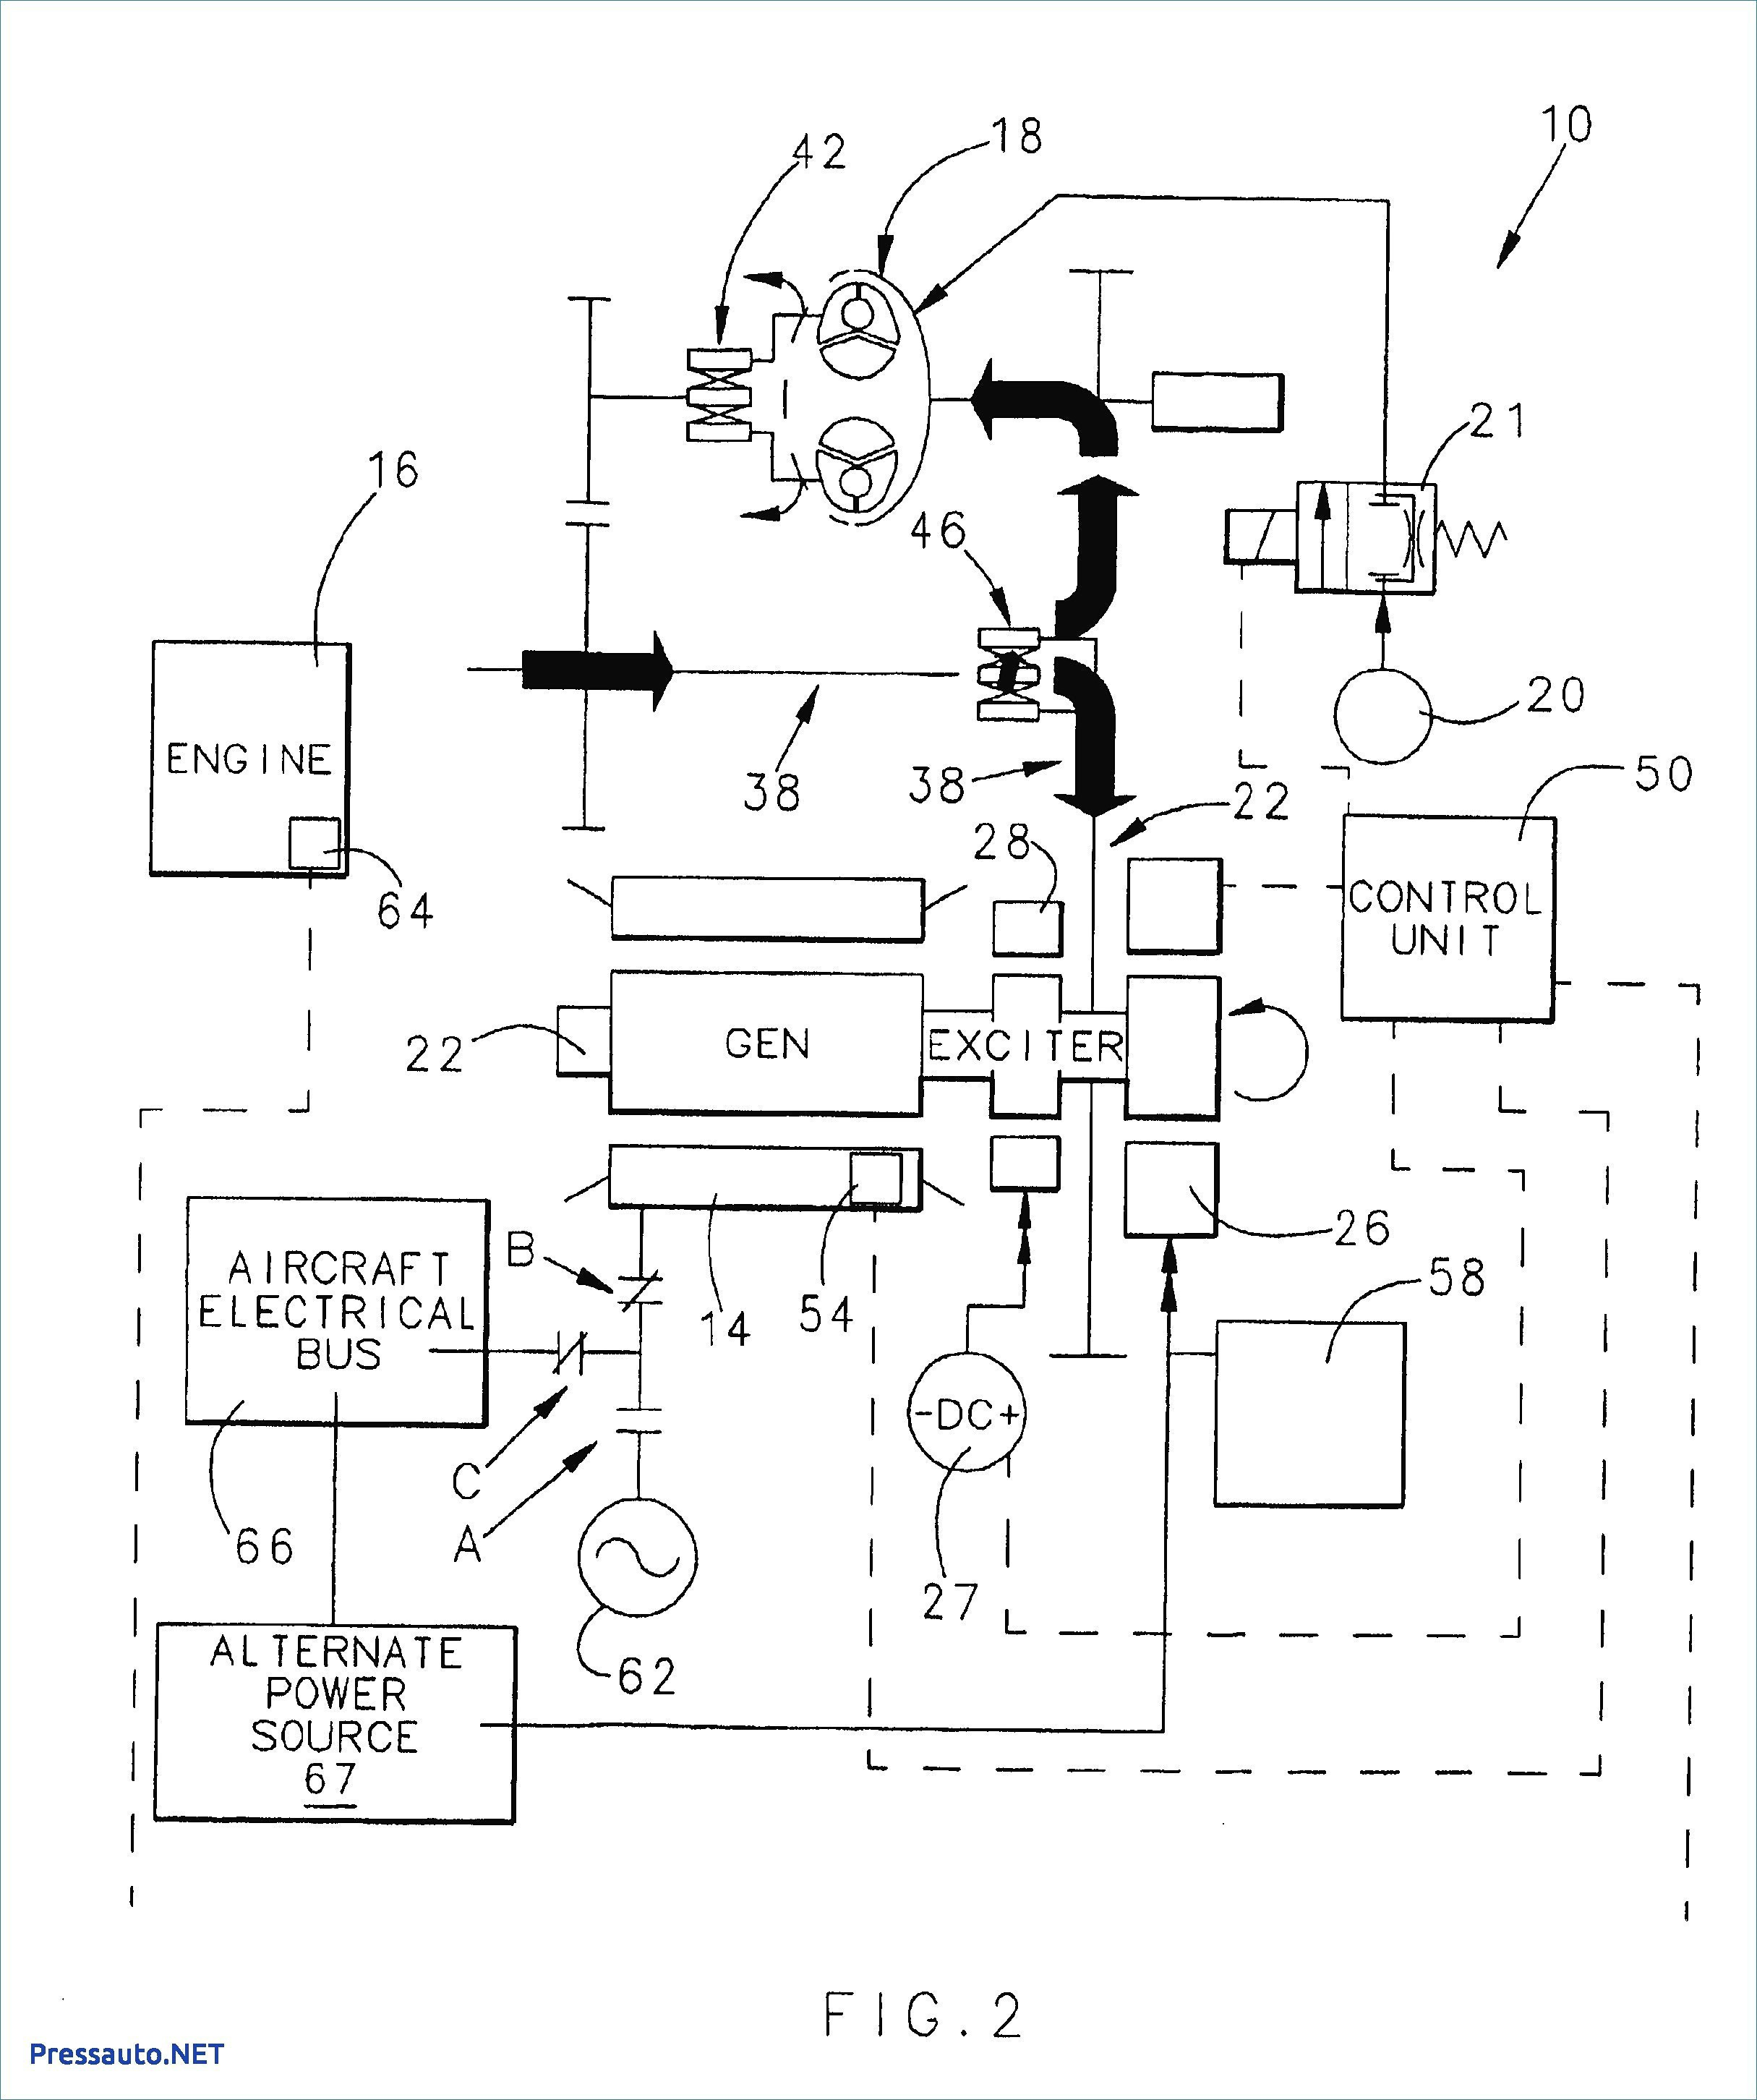 small resolution of lincoln welder wiring diagram for 220 wiring diagram used220v welder wiring diagram wiring schematic diagram 152